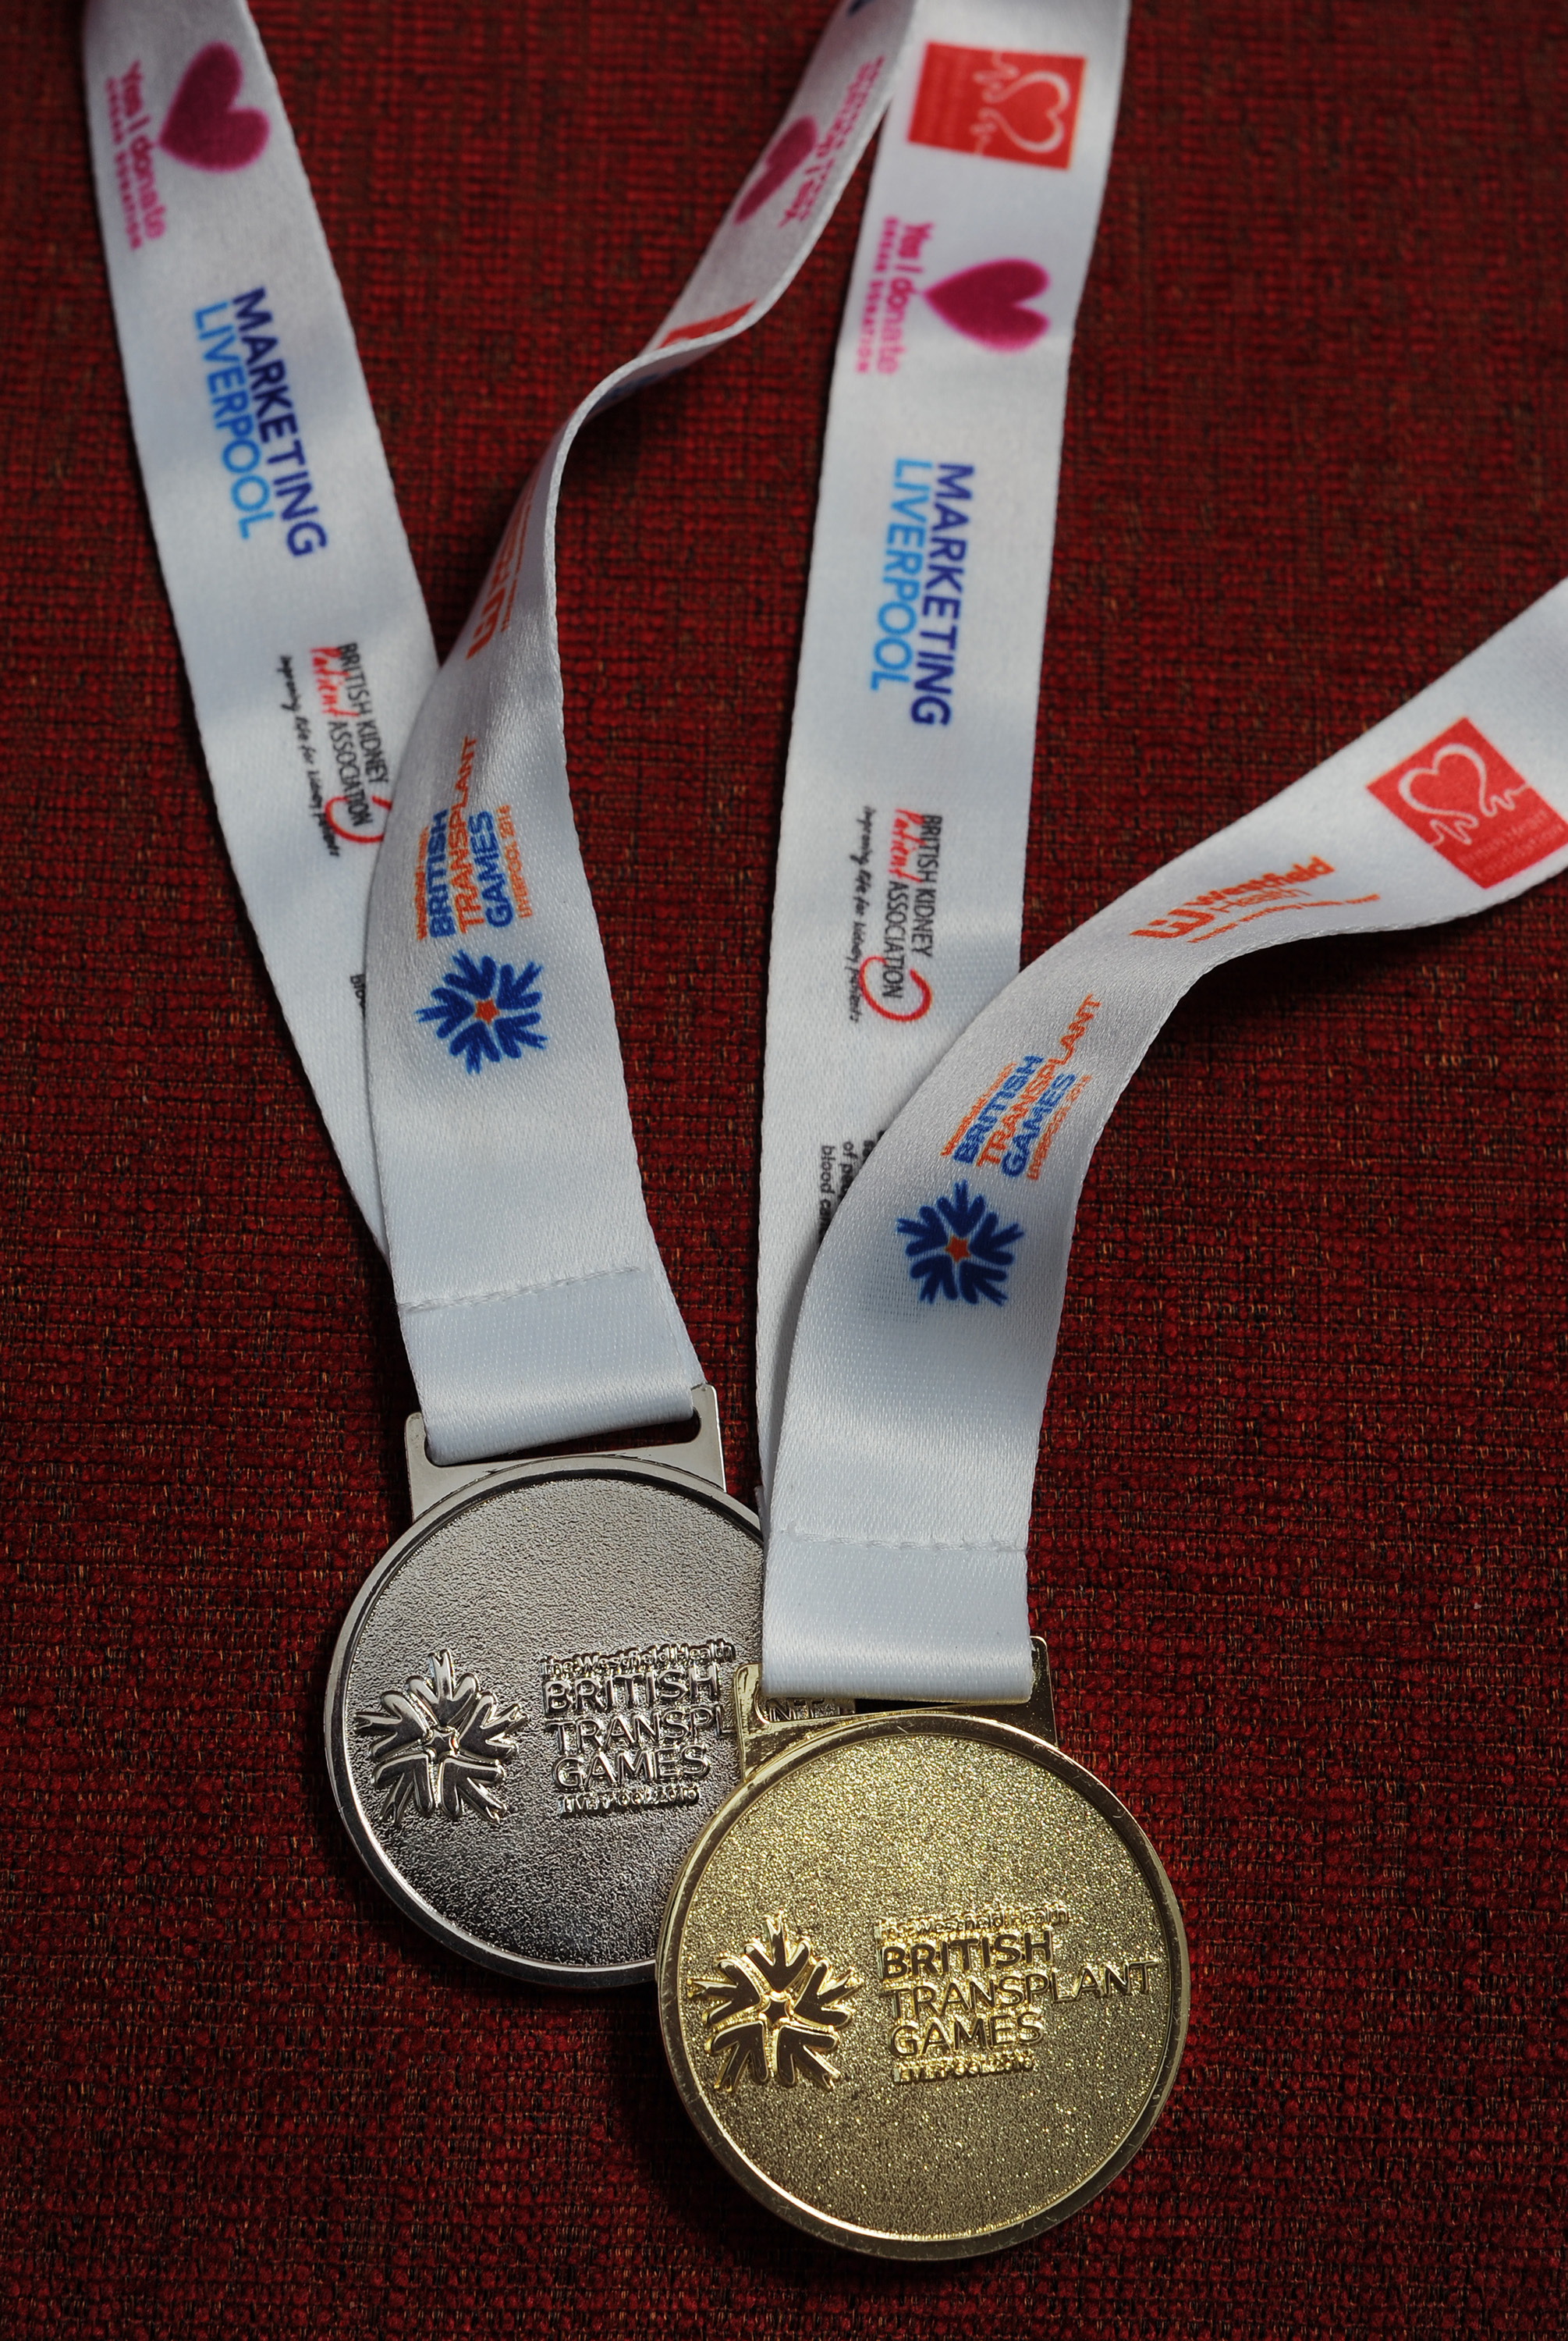 Mike Oliver's gold and silver medals from the GB Transplant Games